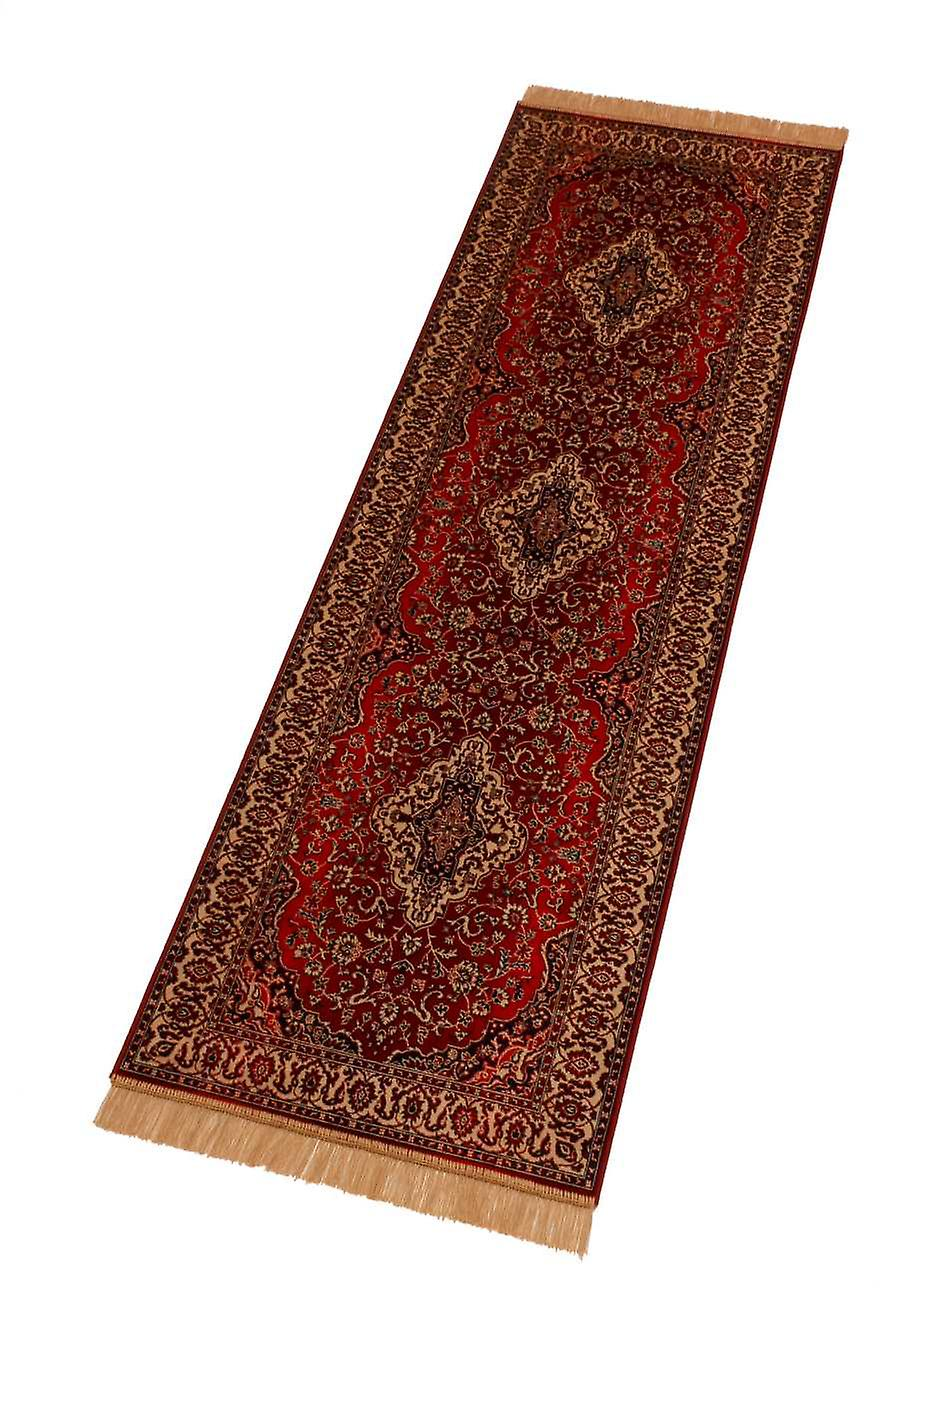 Red Persian Medallion Artsilk Faux Silk Effect Hall Runner Rugs 9099/12